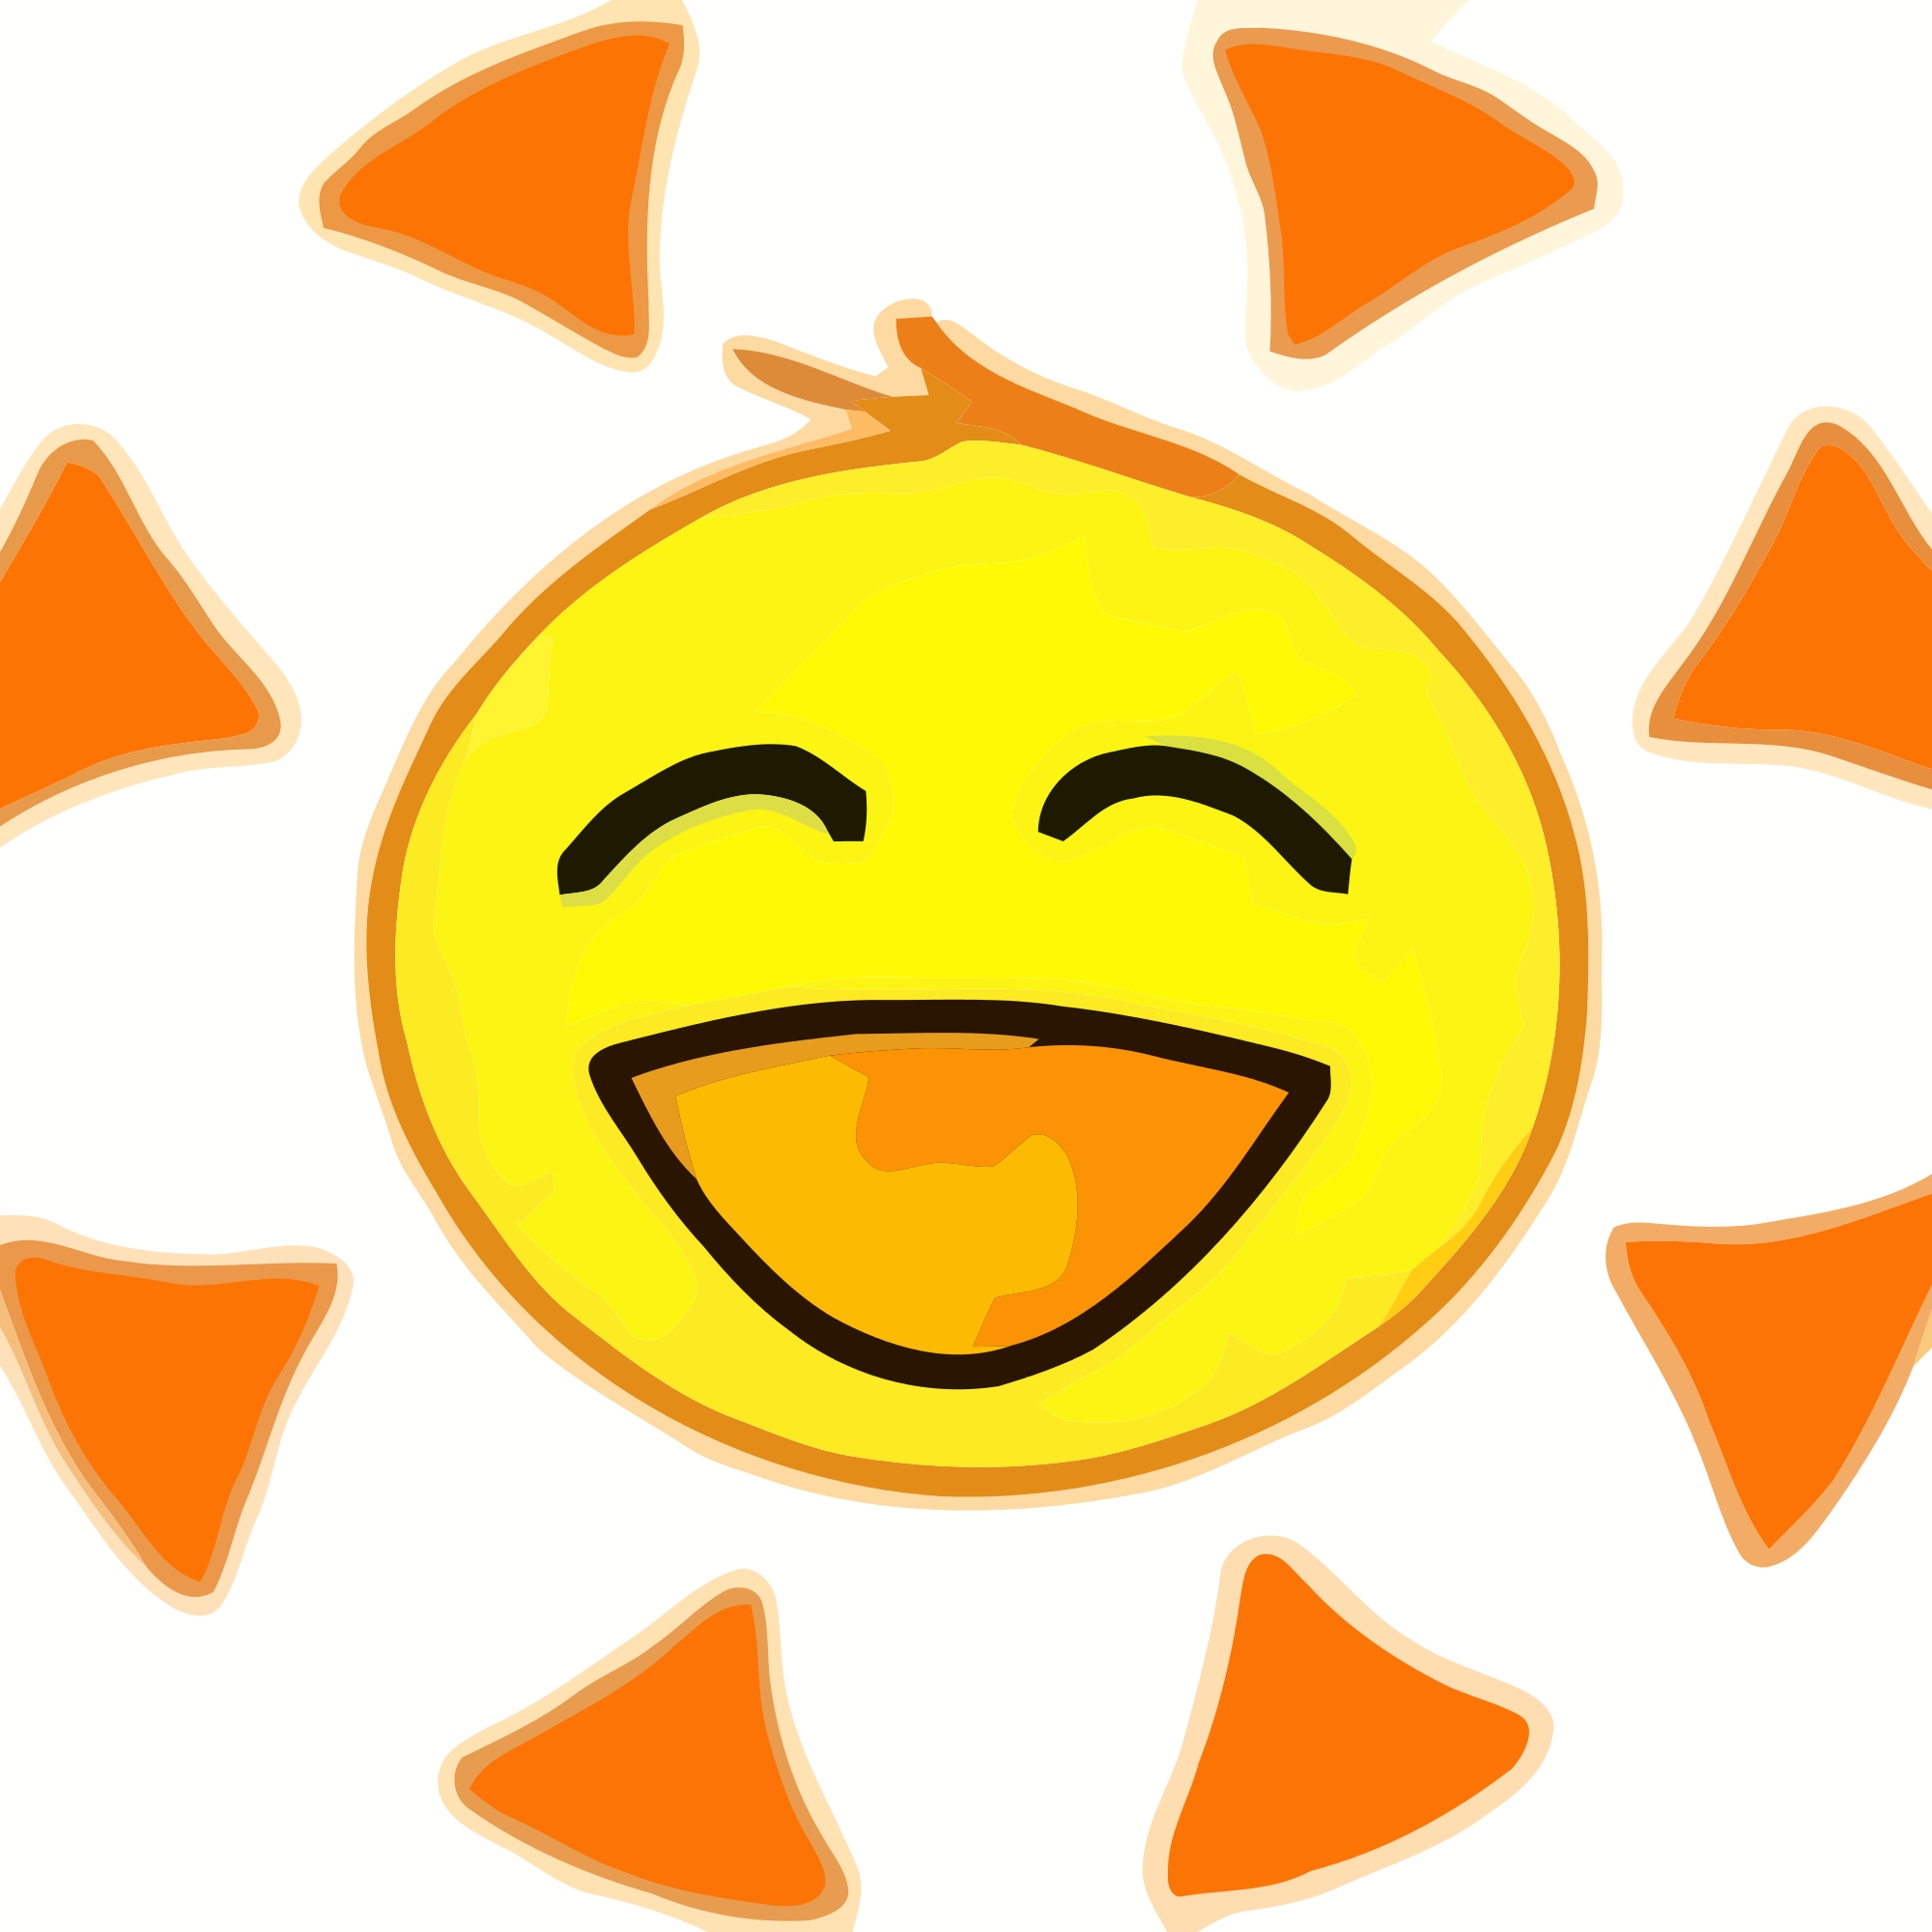 2000x2000 Sun Clipart Images Vector And Pictures